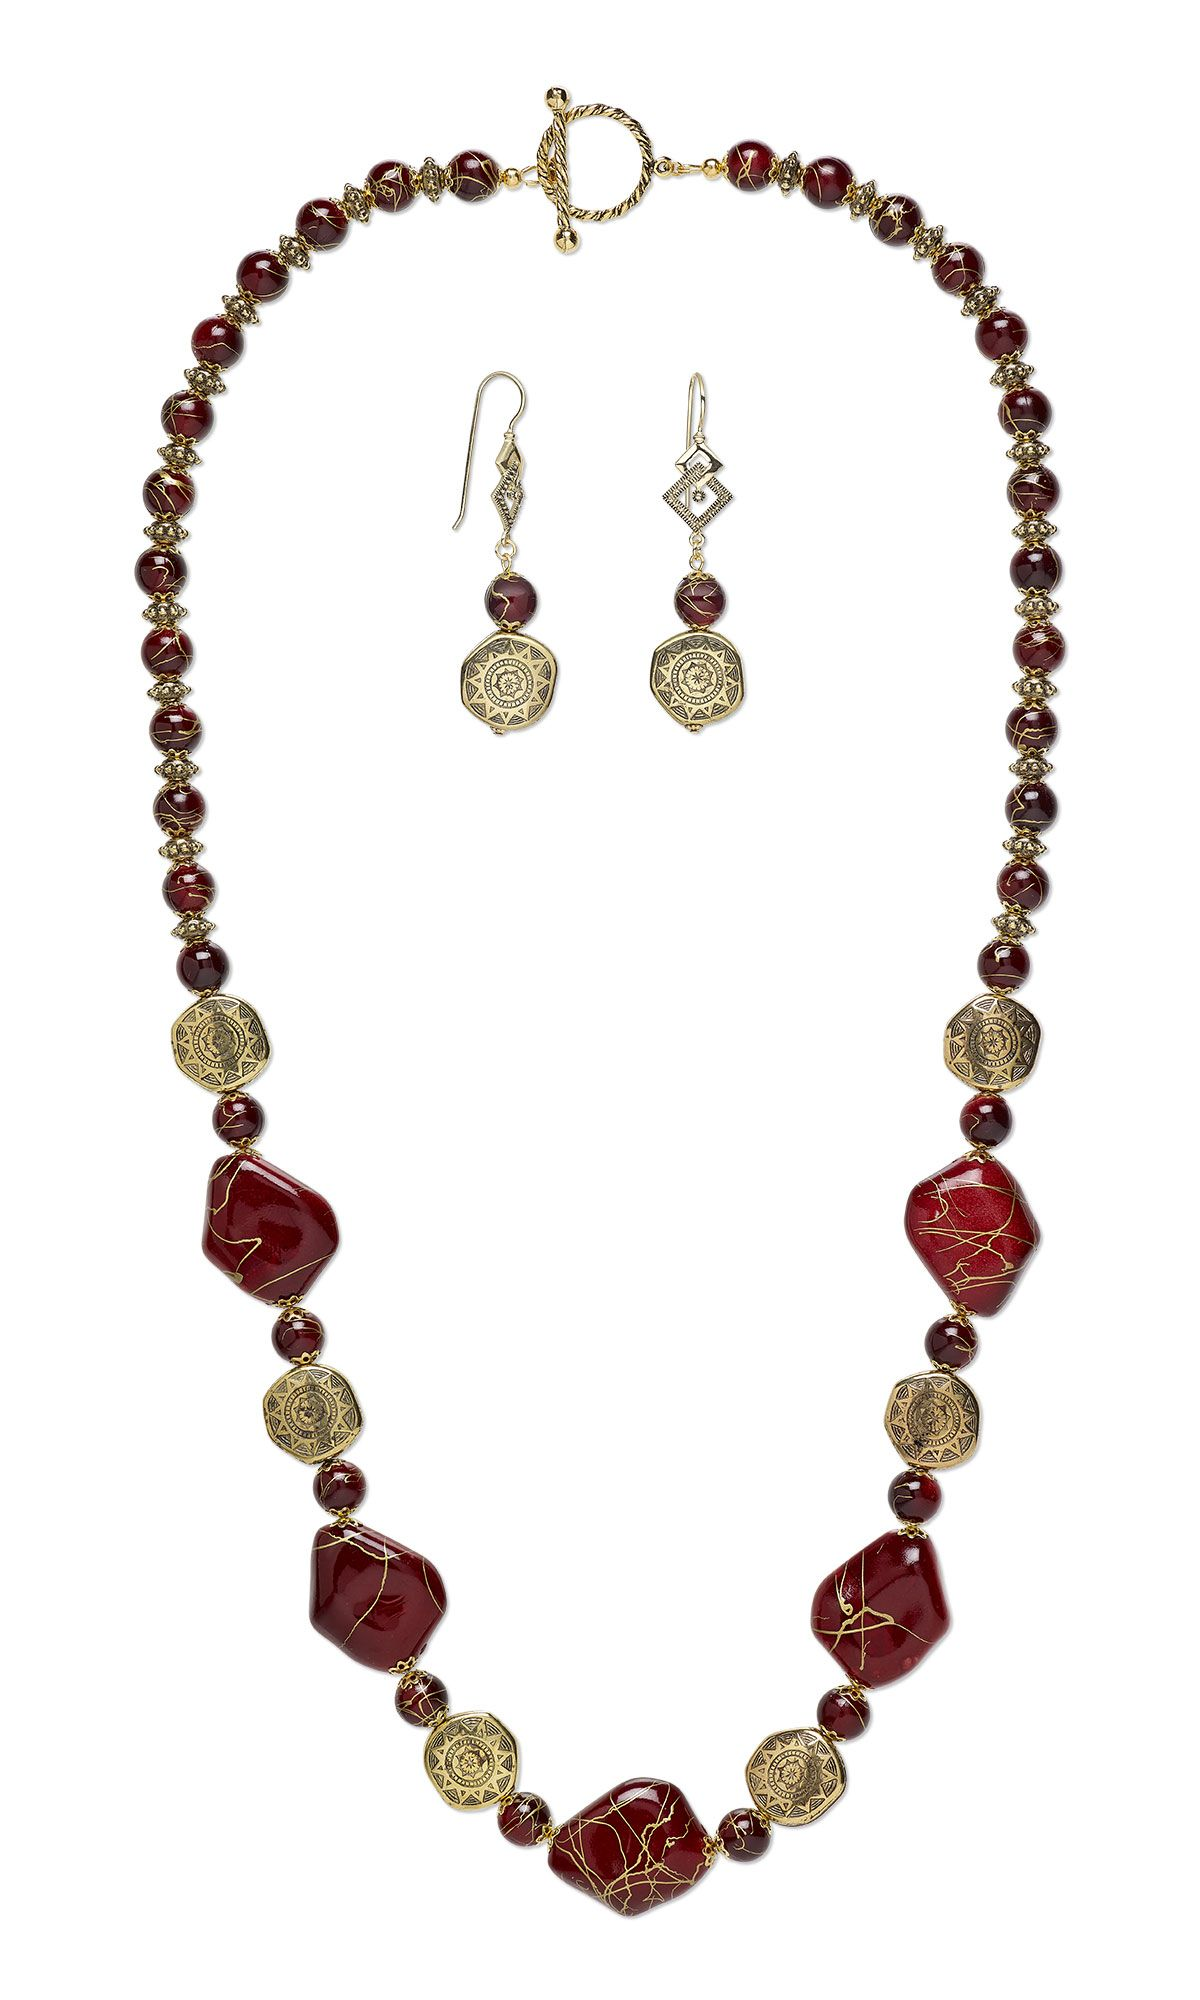 jewelry design single strand necklace and earring set with acrylic